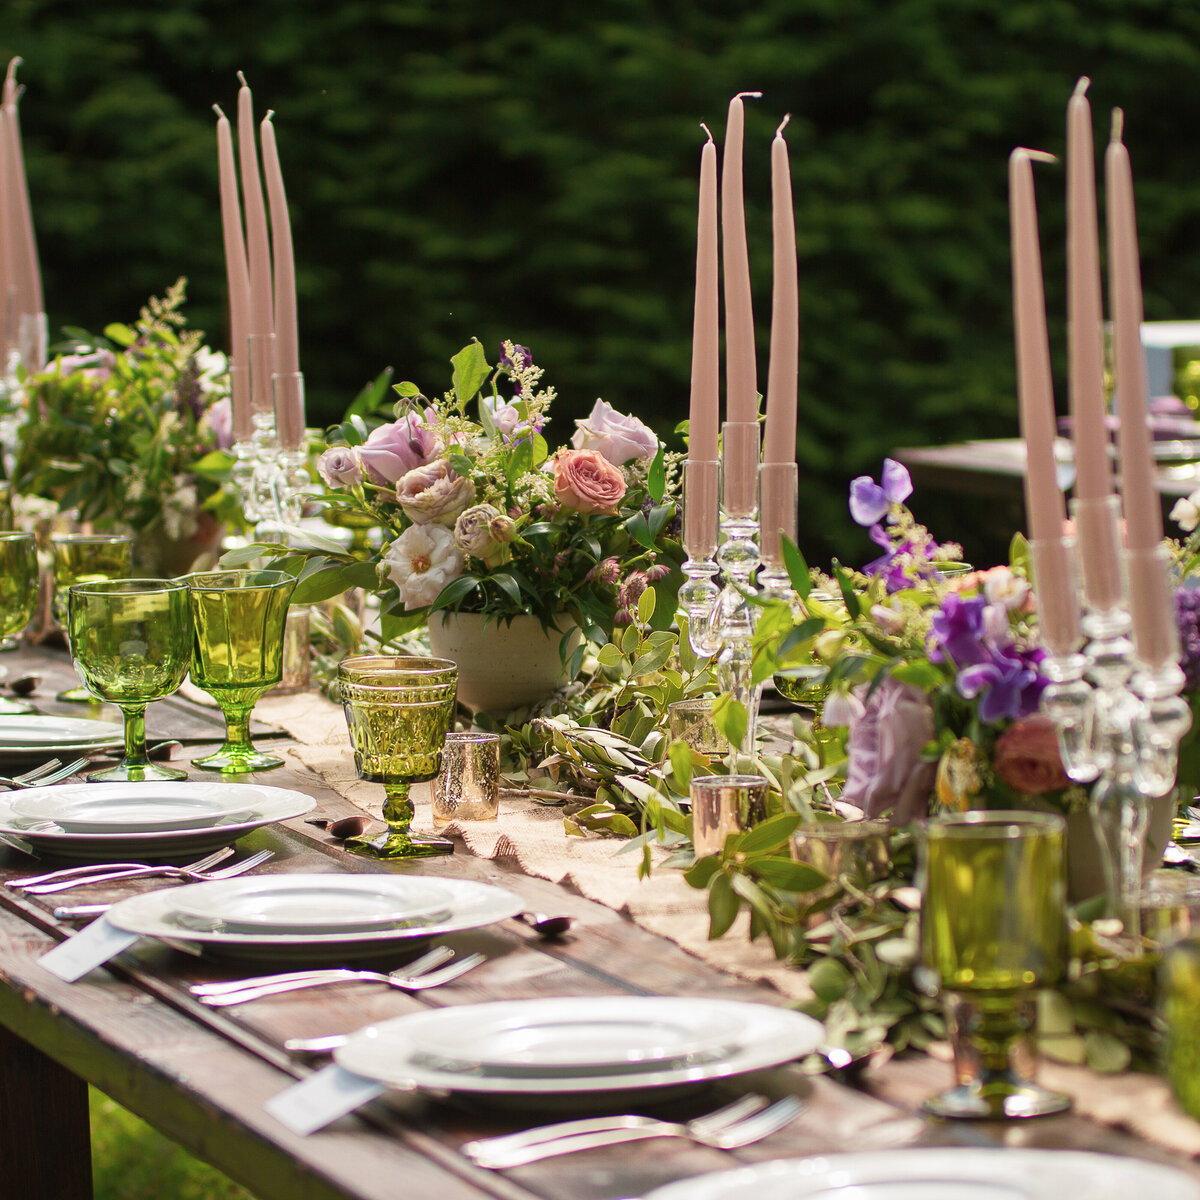 Rustic Wedding reception decor with  pink, peach, purple  and green floral centrepieces on a wooden table outdoors.